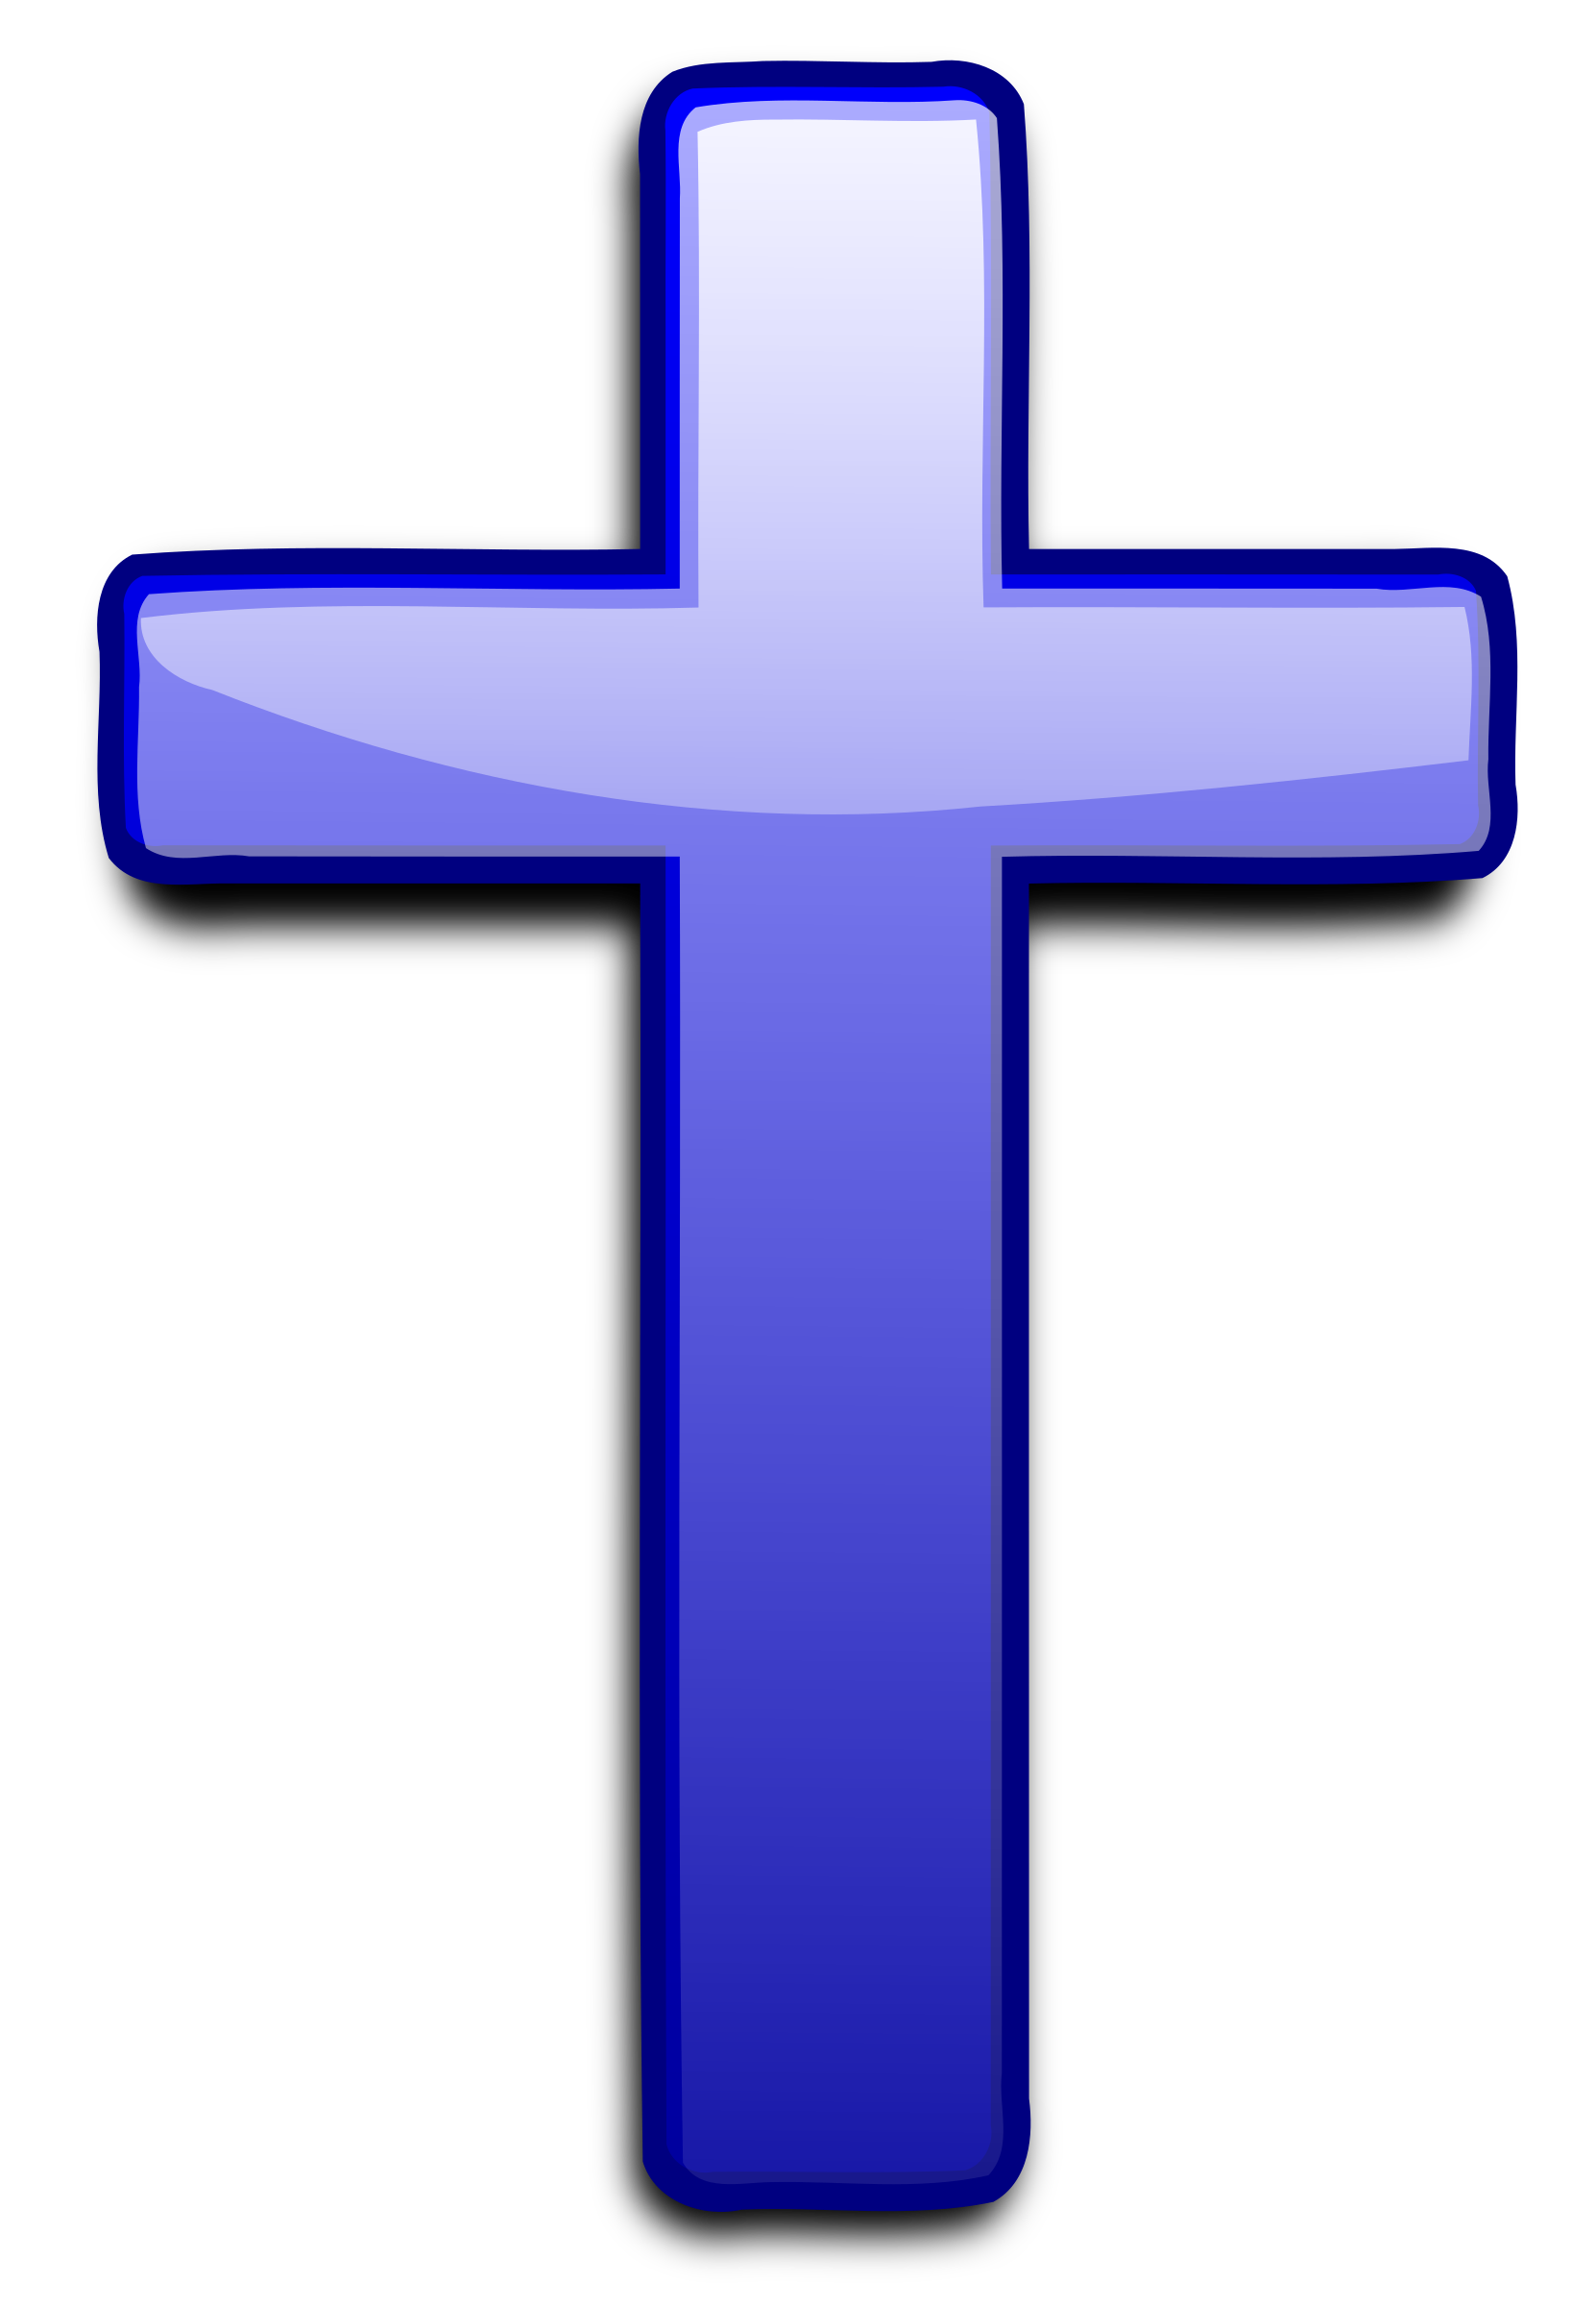 Sign of the cross clipart jpg freeuse Clipart - Cross 004 jpg freeuse